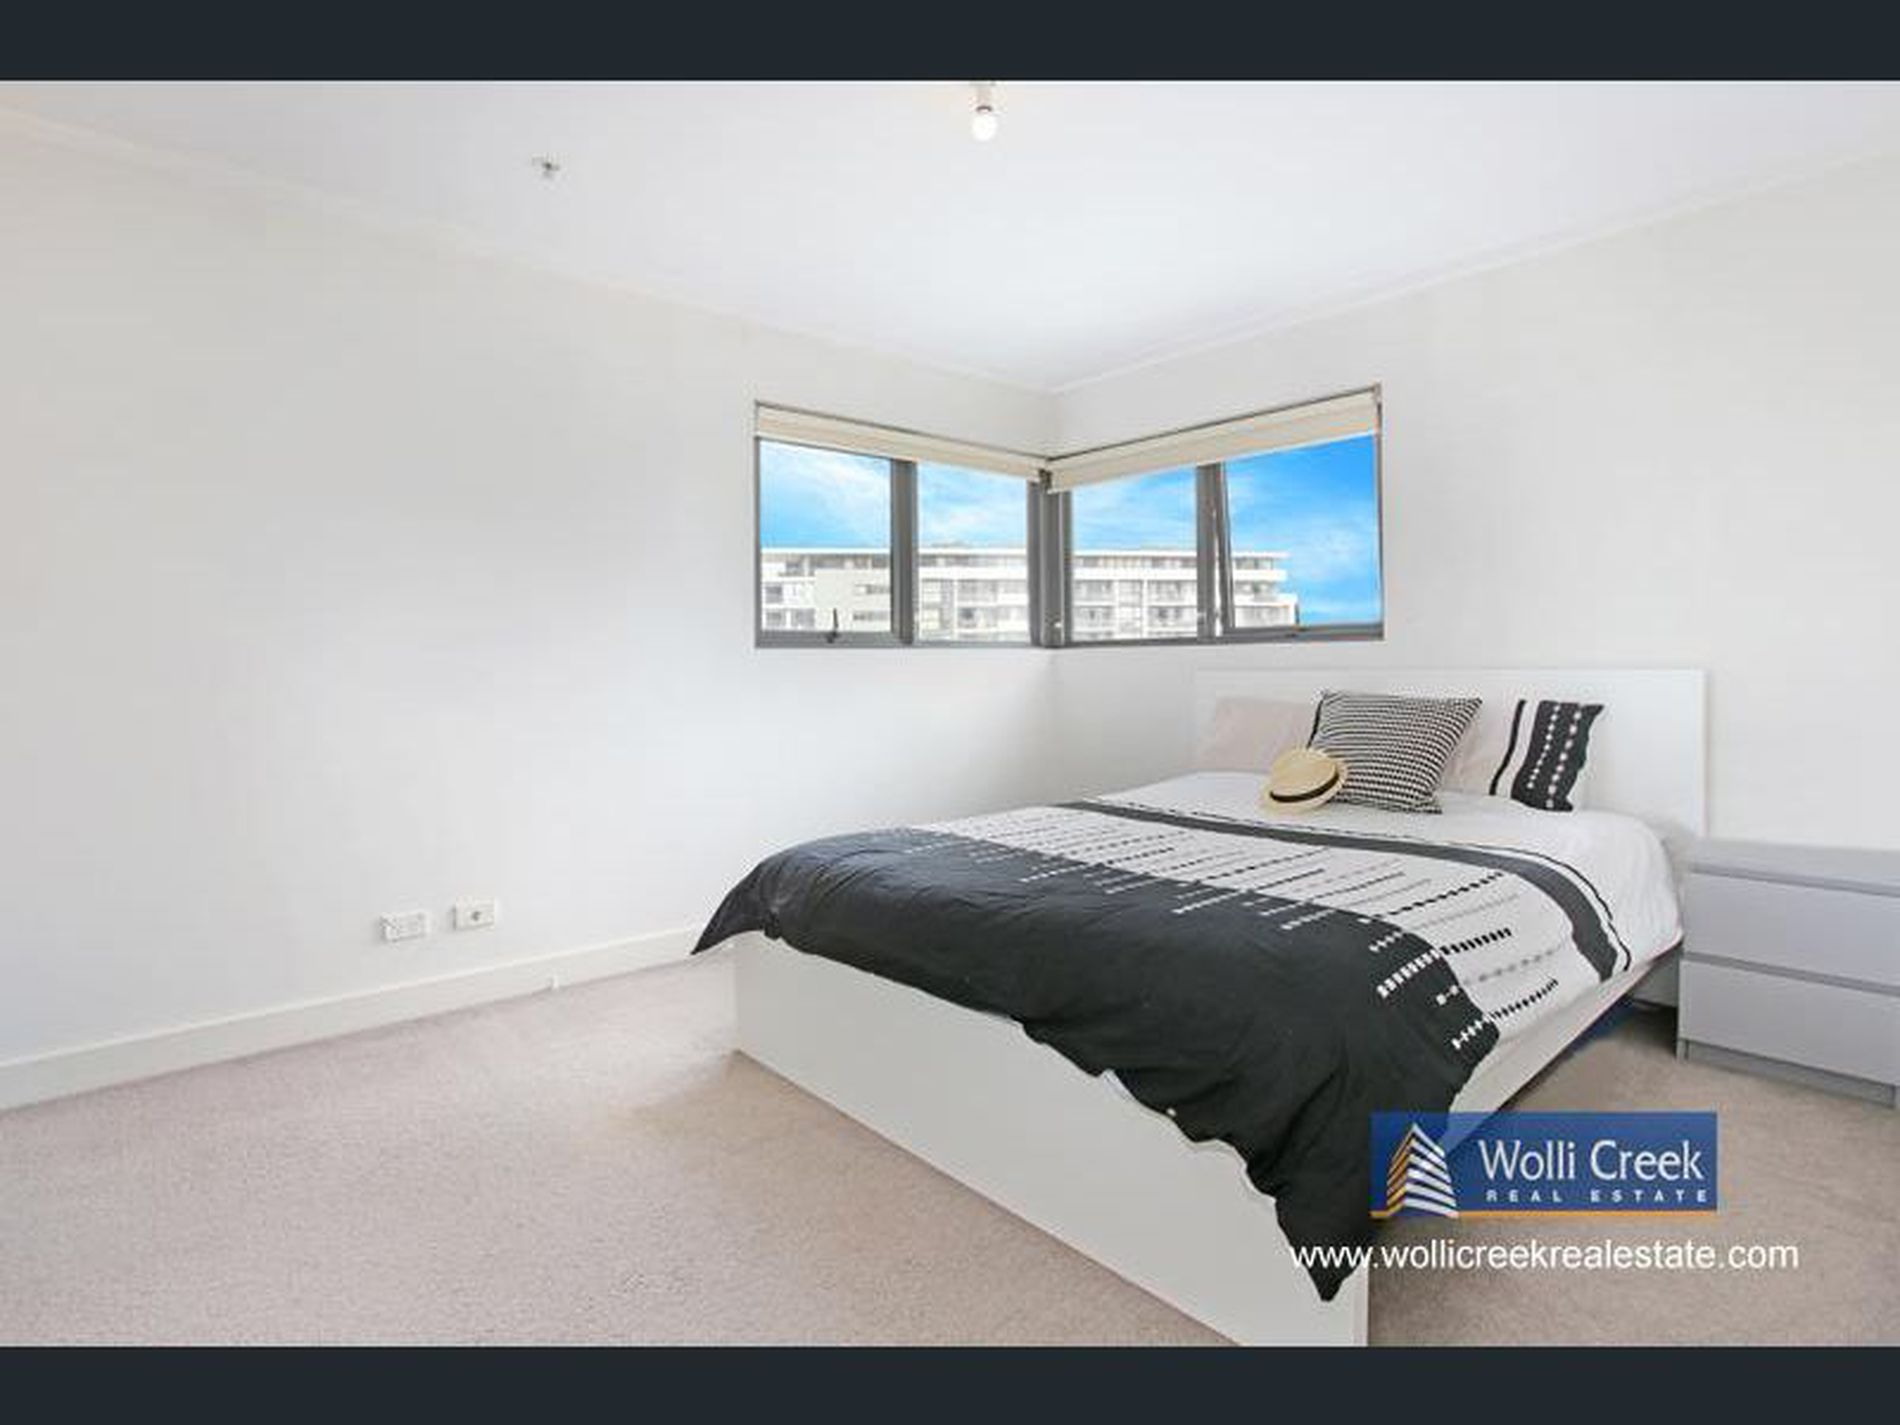 A207 / 35 Arncliffe Street, Wolli Creek